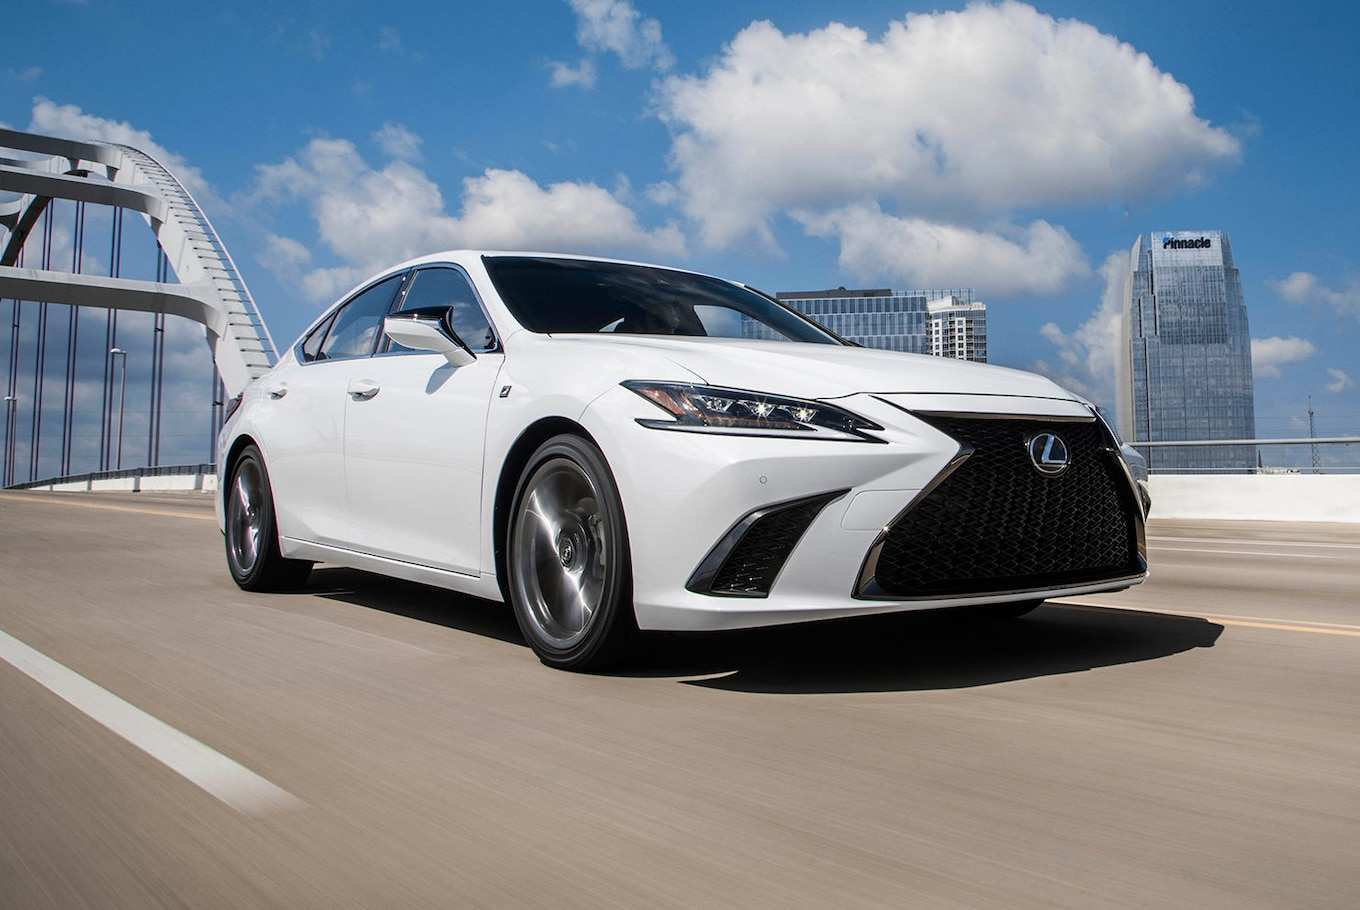 92 The 2019 Lexus Es 350 F Sport New Concept with 2019 Lexus Es 350 F Sport